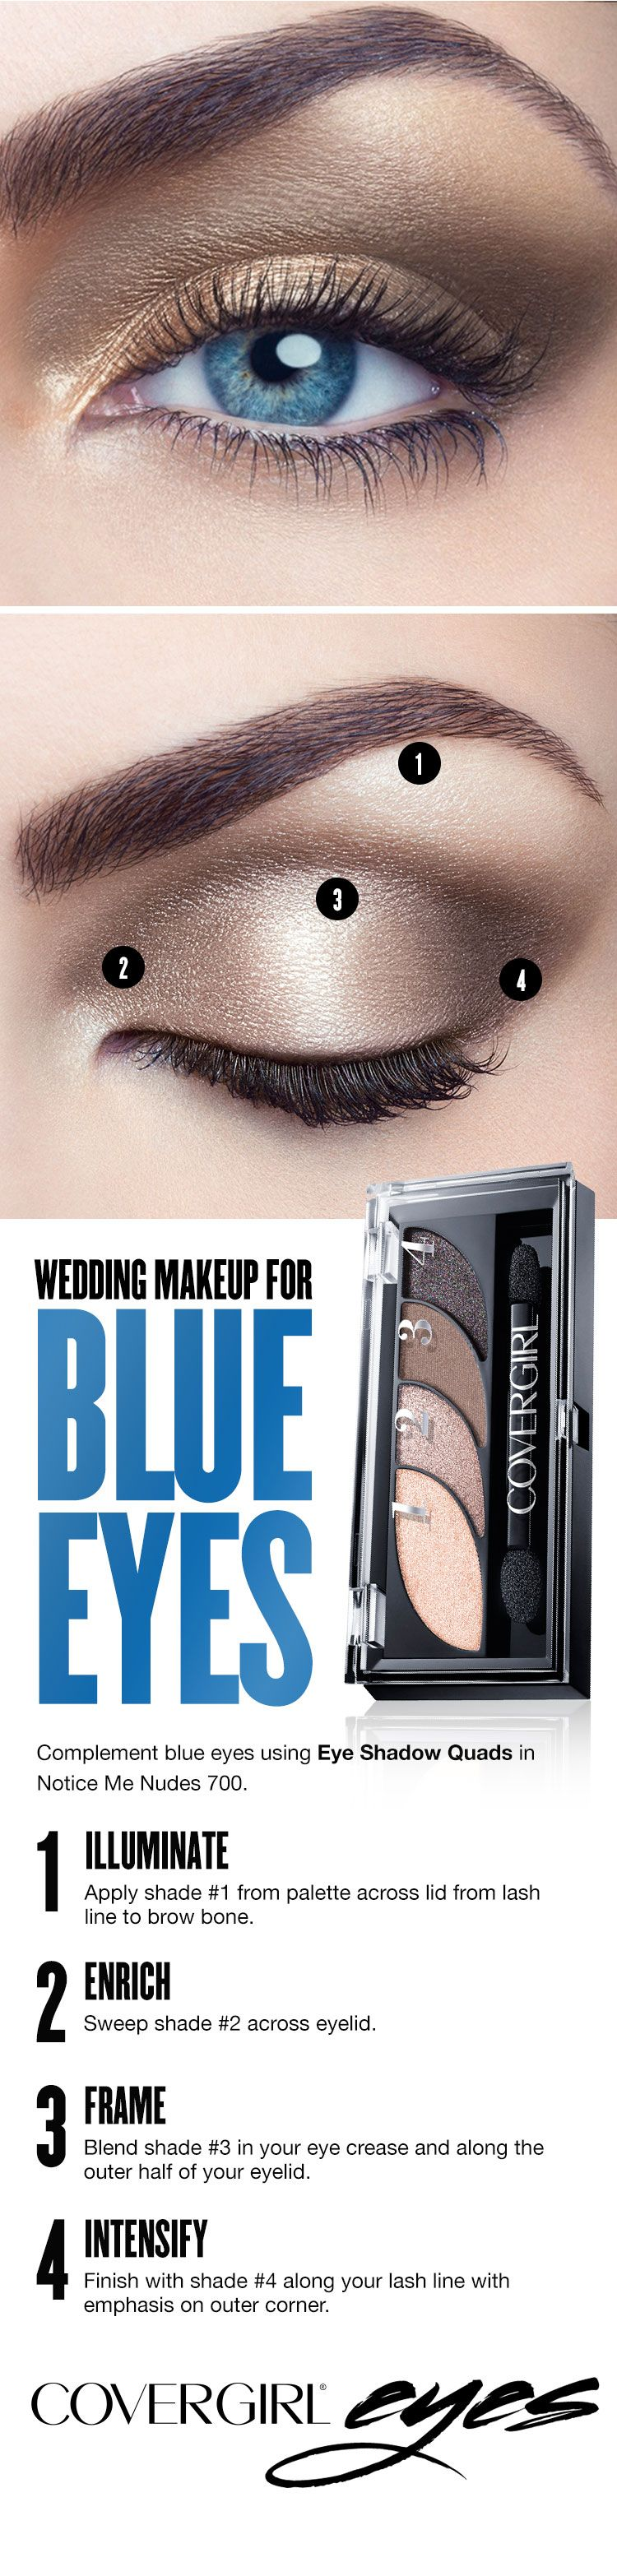 light, neutral tones best complement blue eyes. covergirl's